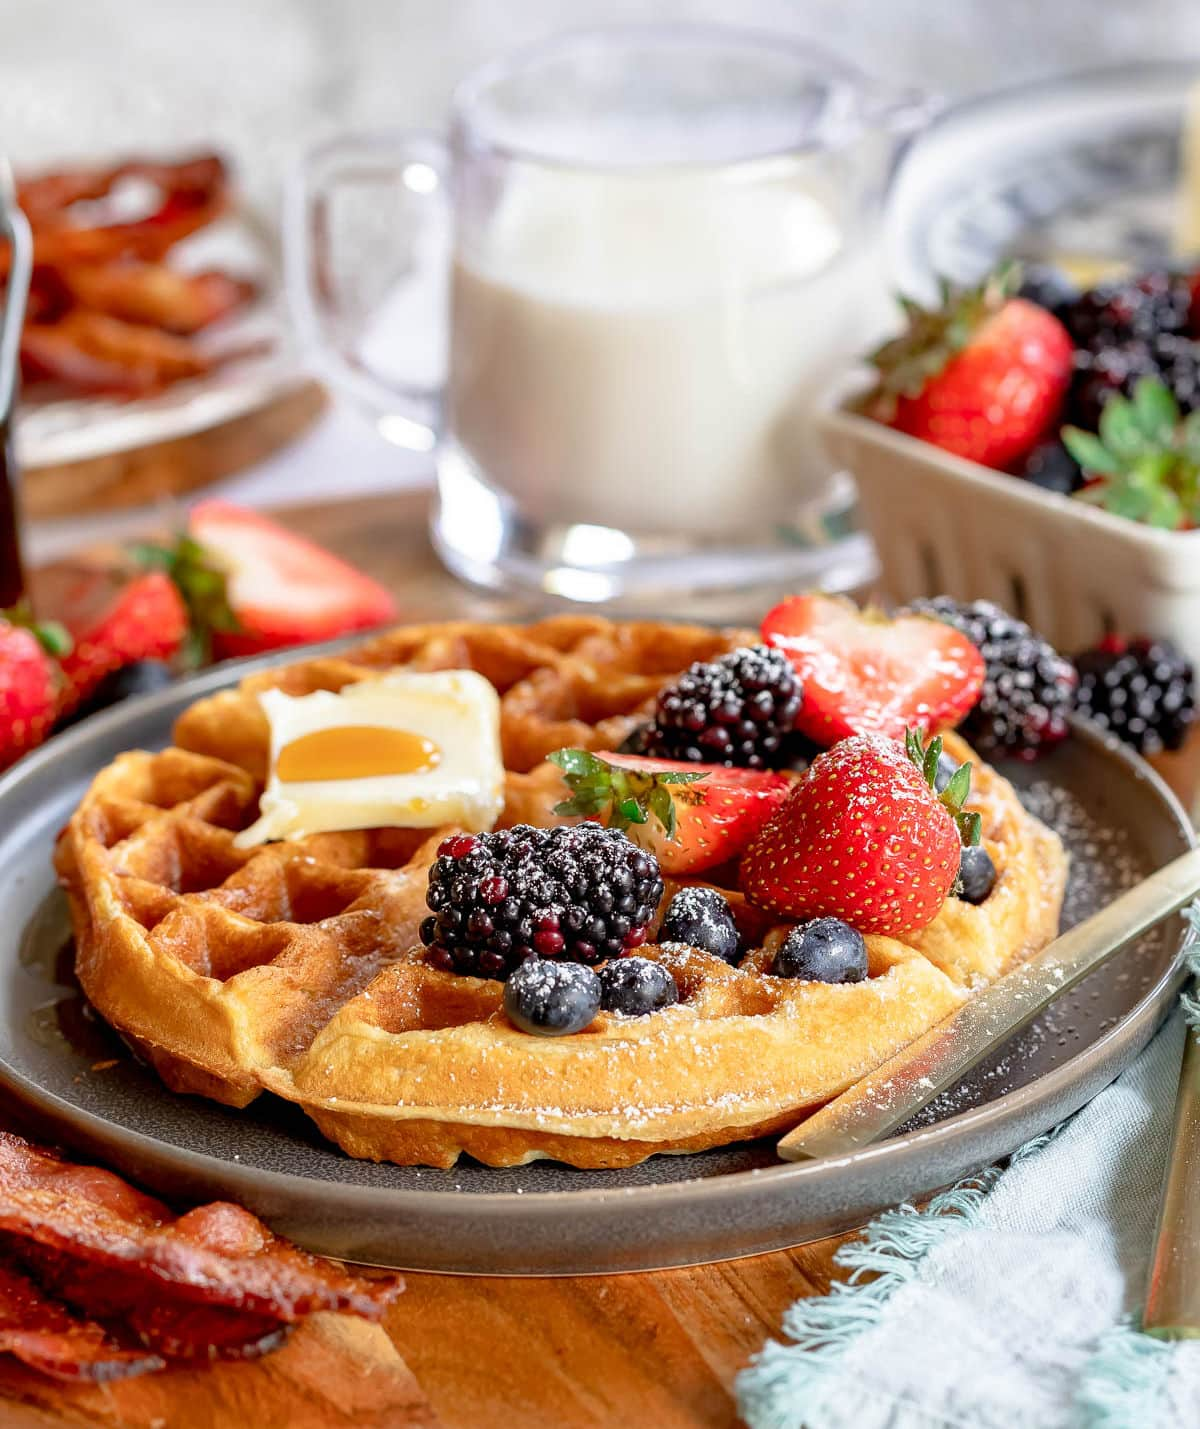 one waffle topped with berries and powdered sugar as well as some butter and syrup. milk and bacon in background.